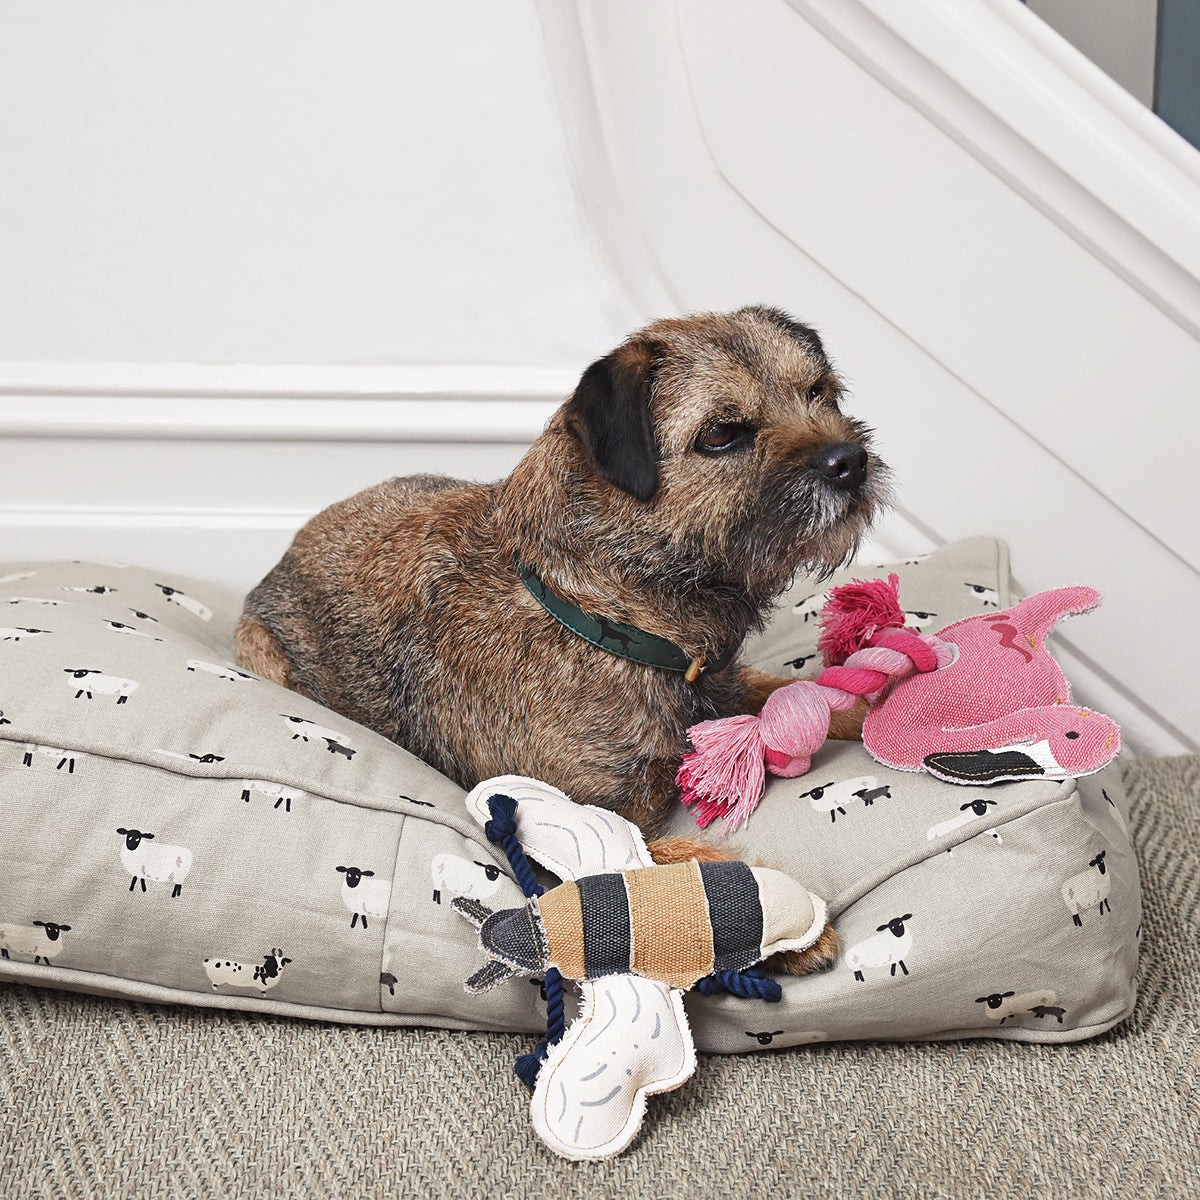 Dog sitting on Sophie Allport dog bed with Bee dog toy and flamingo dog toy